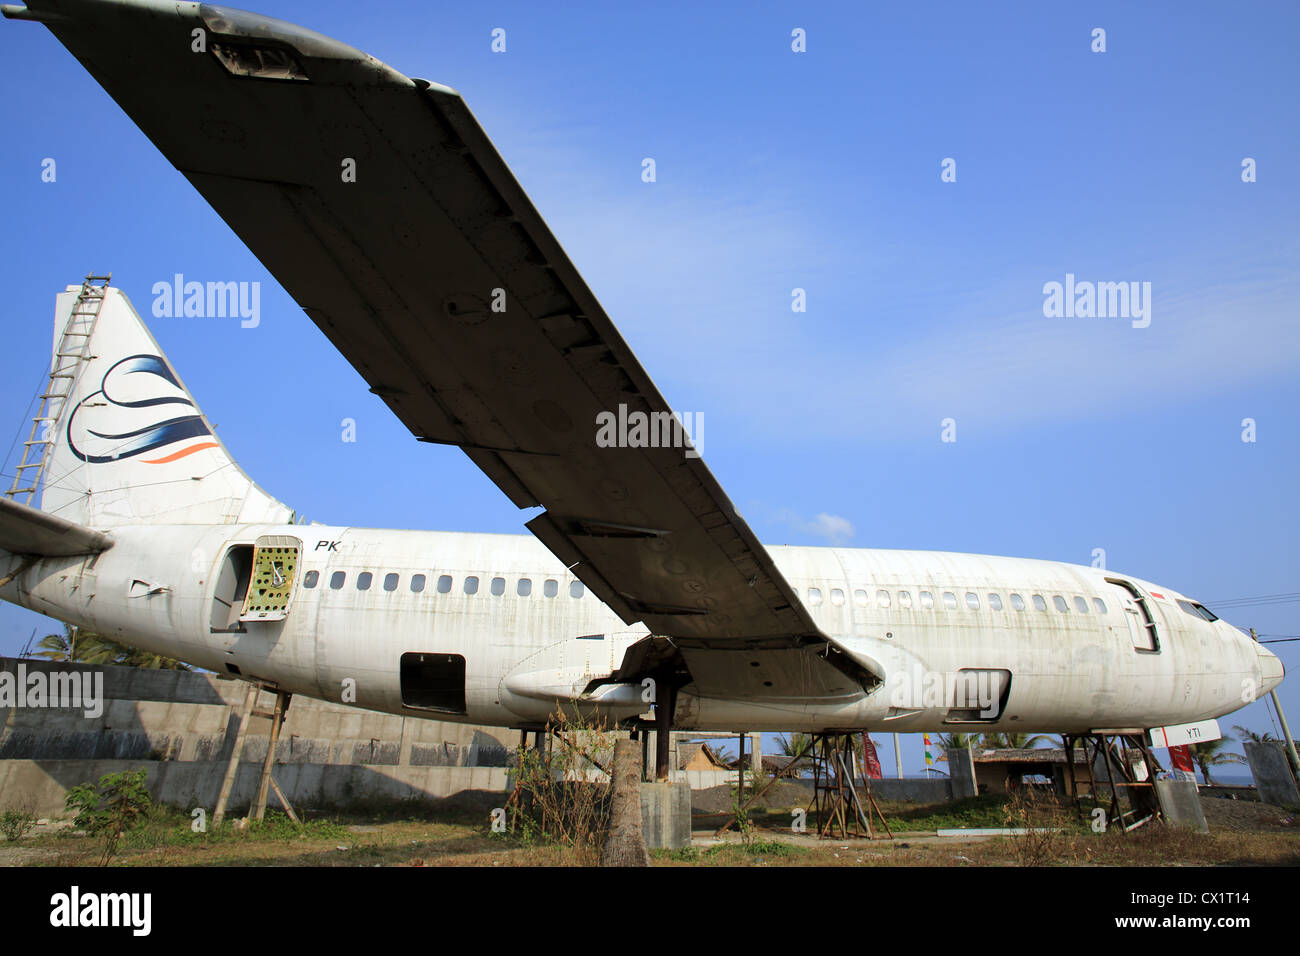 Abandoned fuselage of a jet passenger airliner. - Stock Image